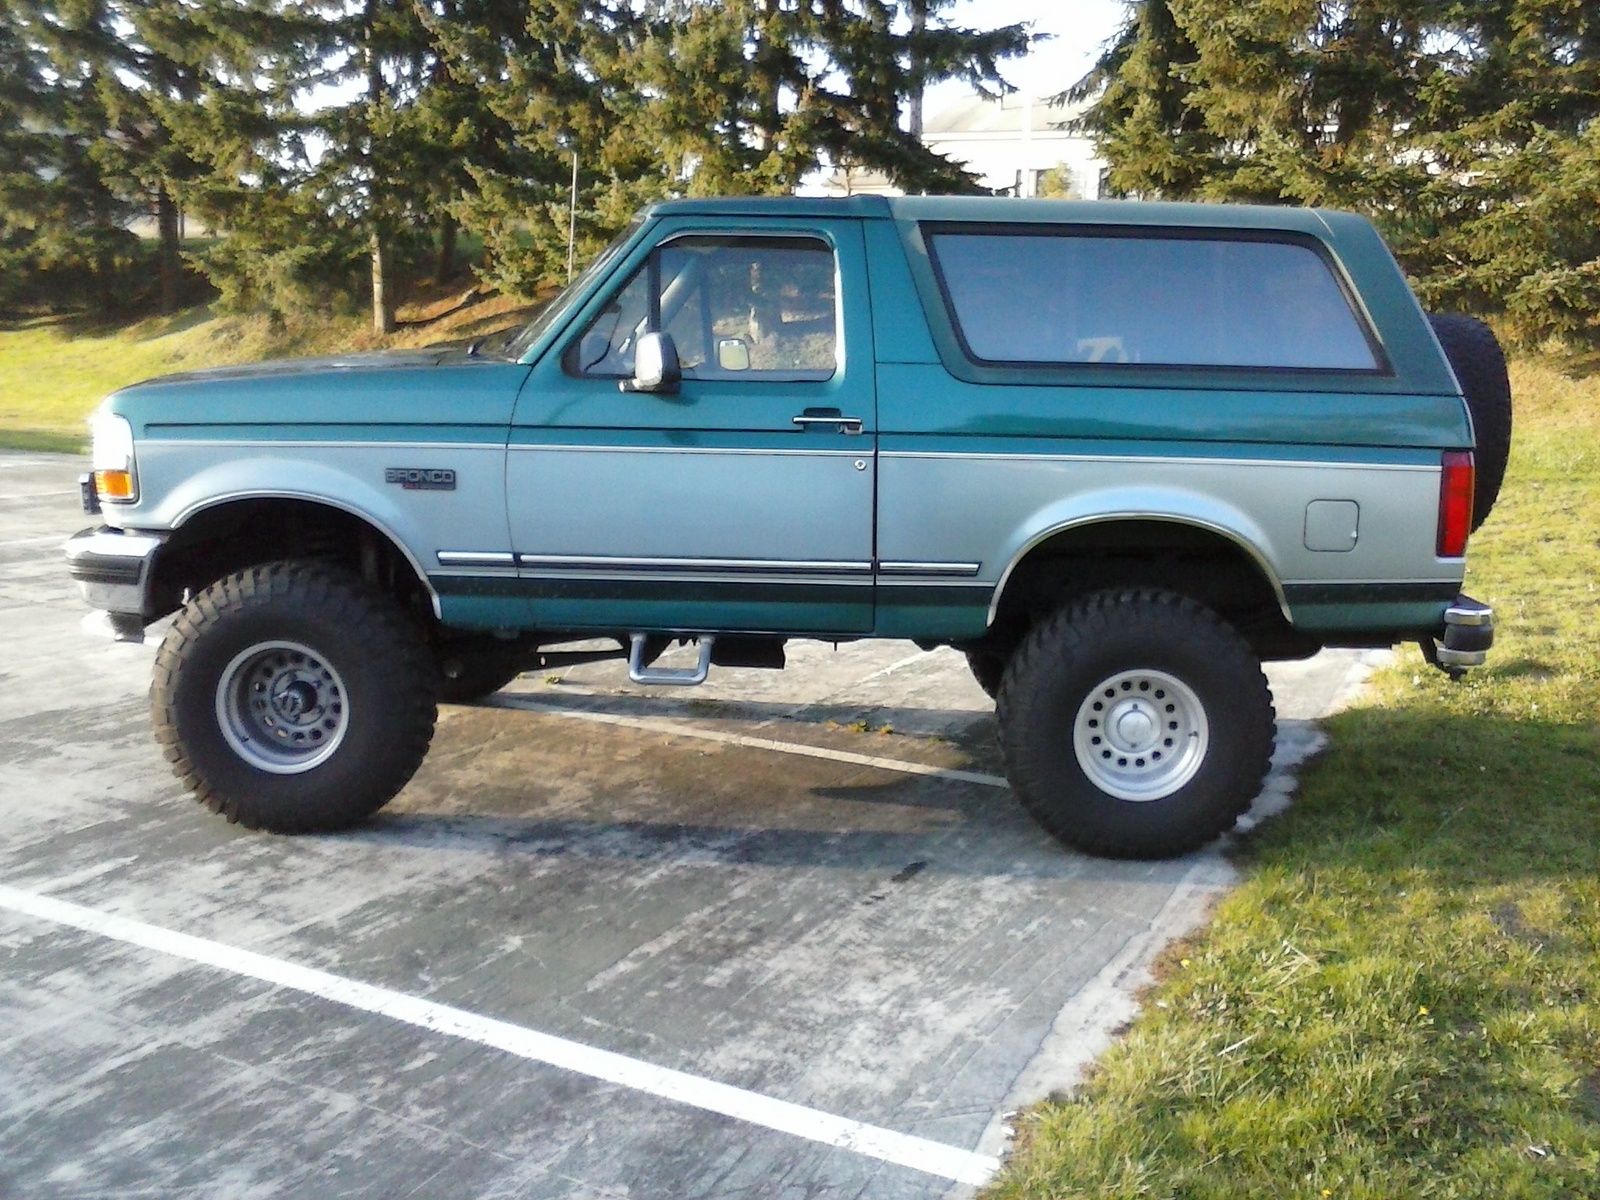 1996 ford bronco related keywords suggestions 1996 ford bronco. Cars Review. Best American Auto & Cars Review